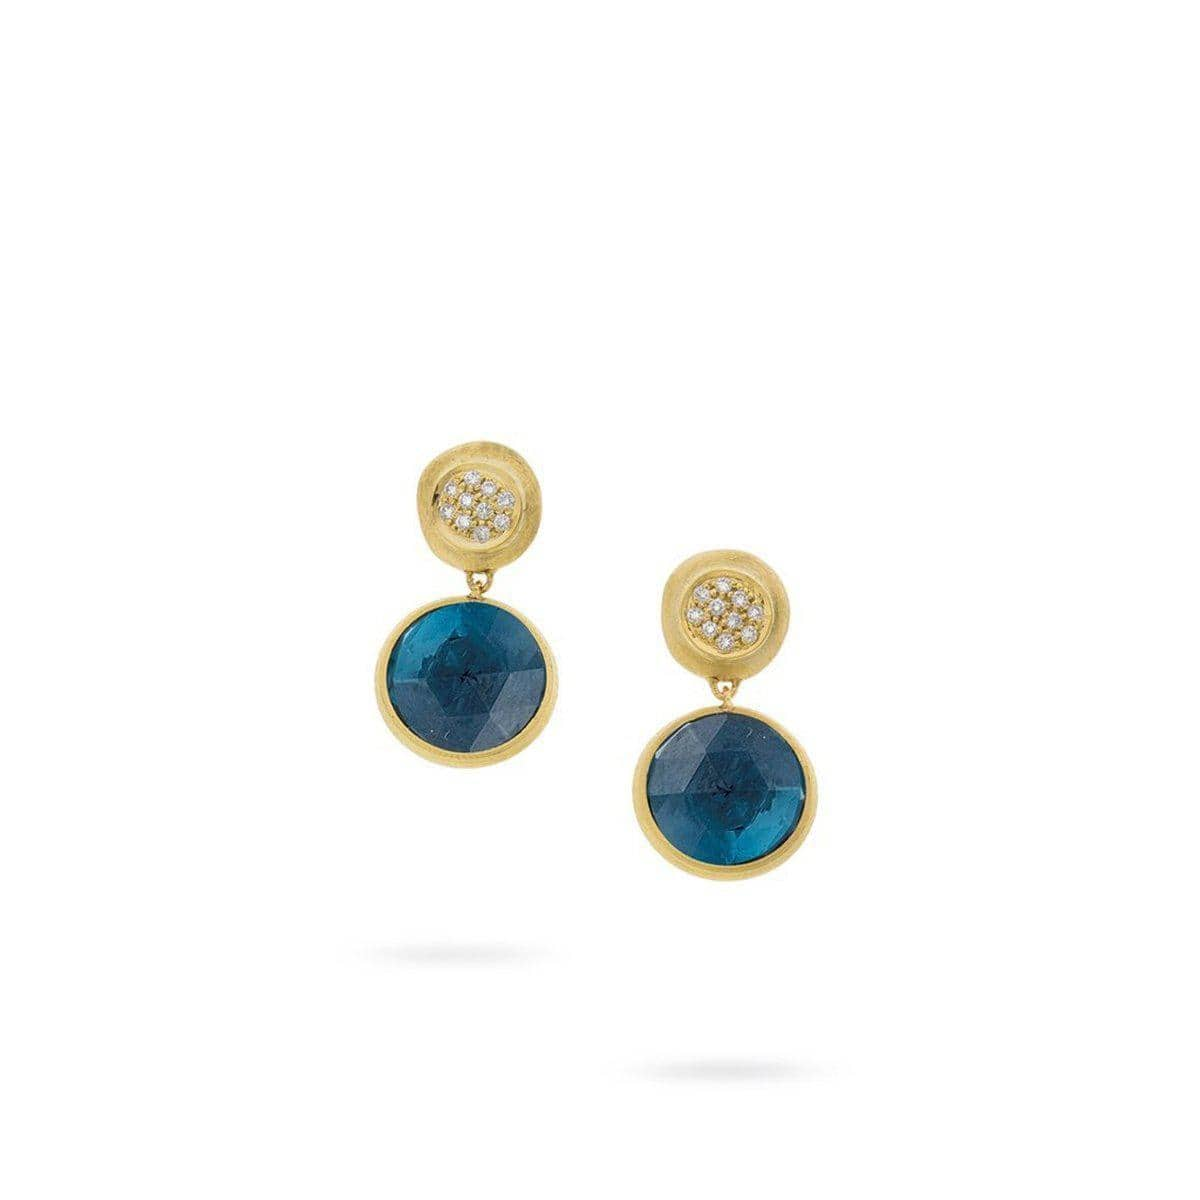 18K Jaipur Earrings - OB1082 B TPL01 Y-Marco Bicego-Renee Taylor Gallery